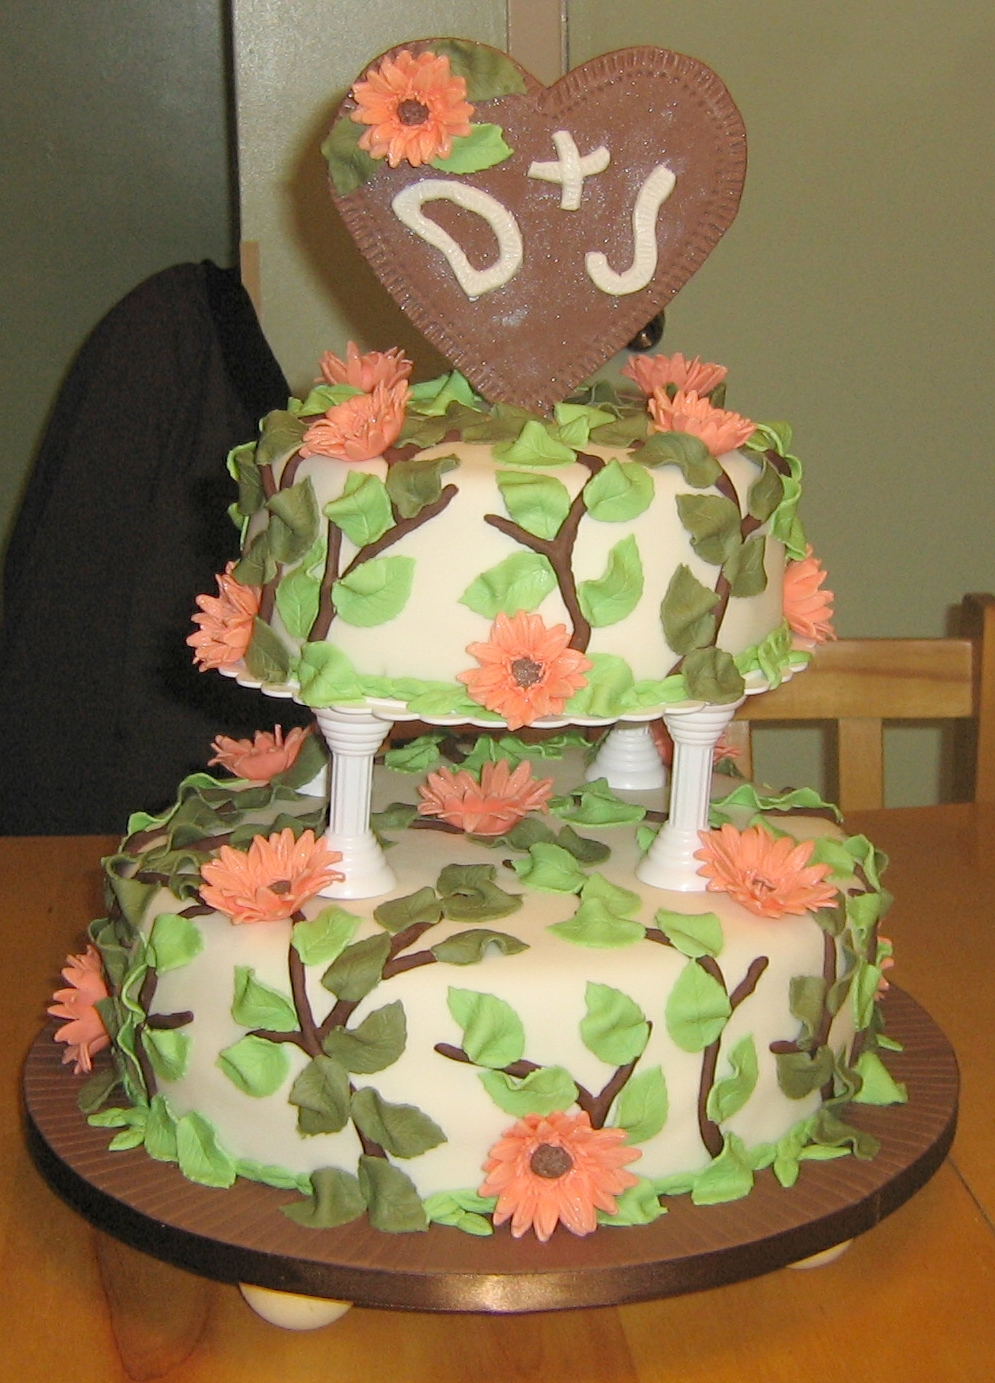 Wedding Cake For D & J